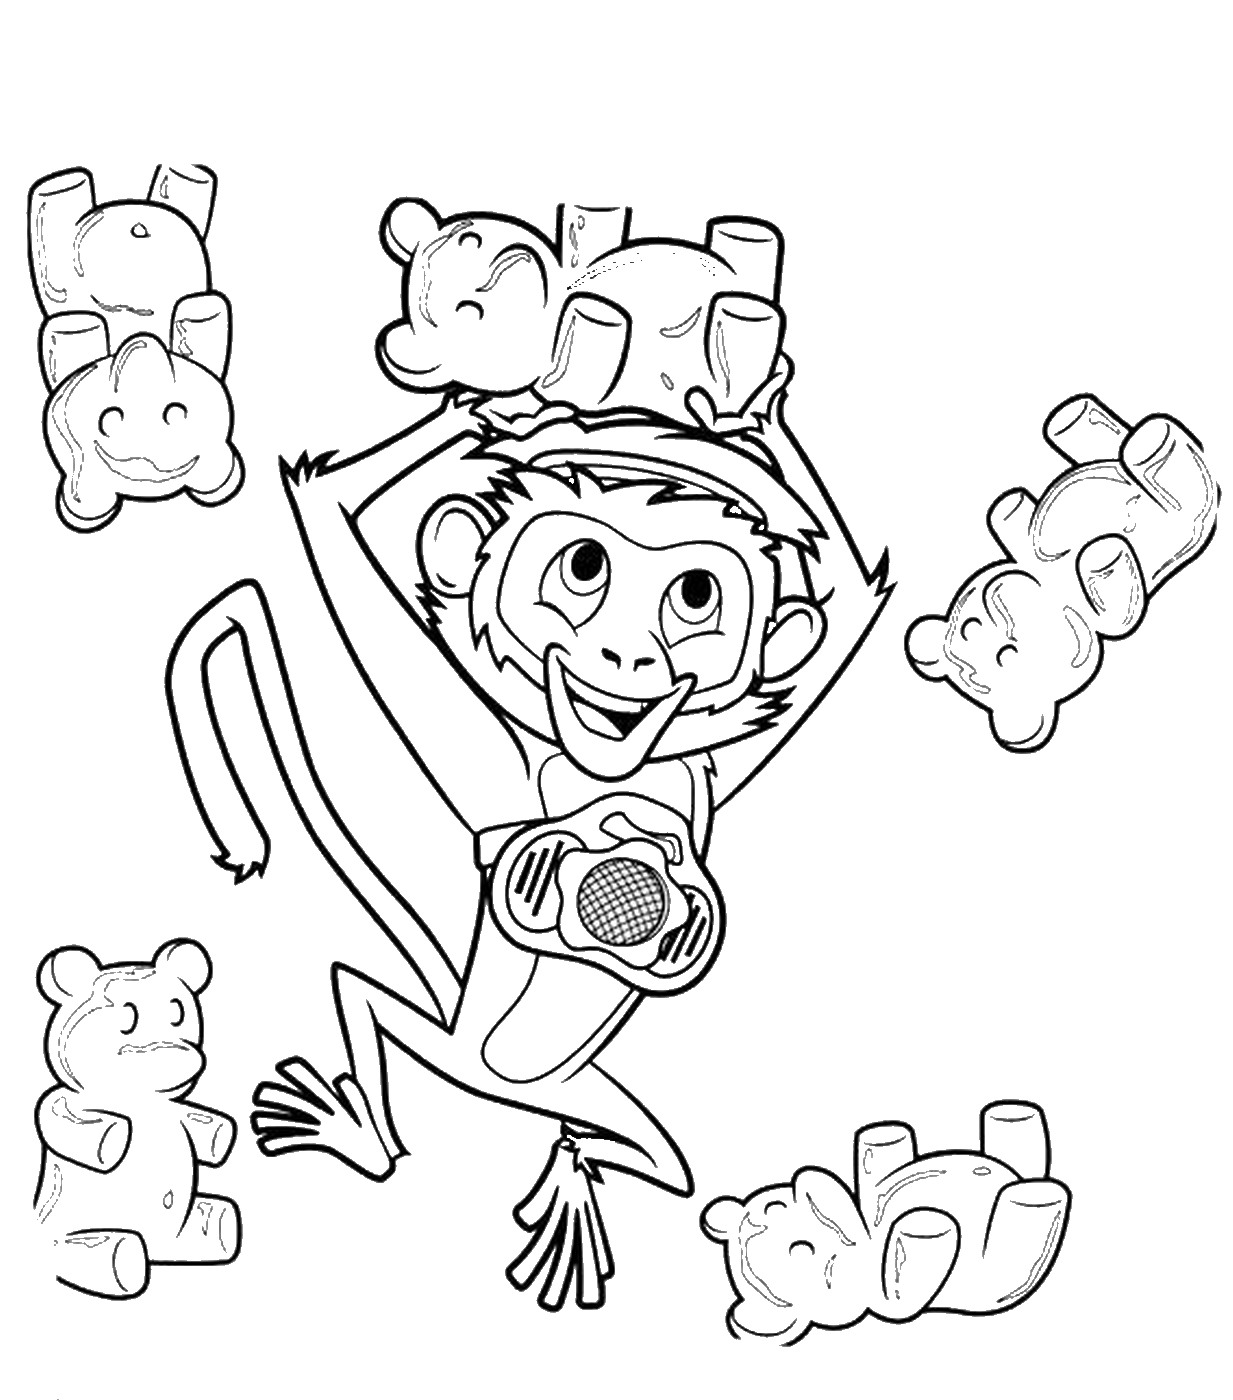 1233x1400 Cloudy With A Chance Of Meatballs Coloring Pages